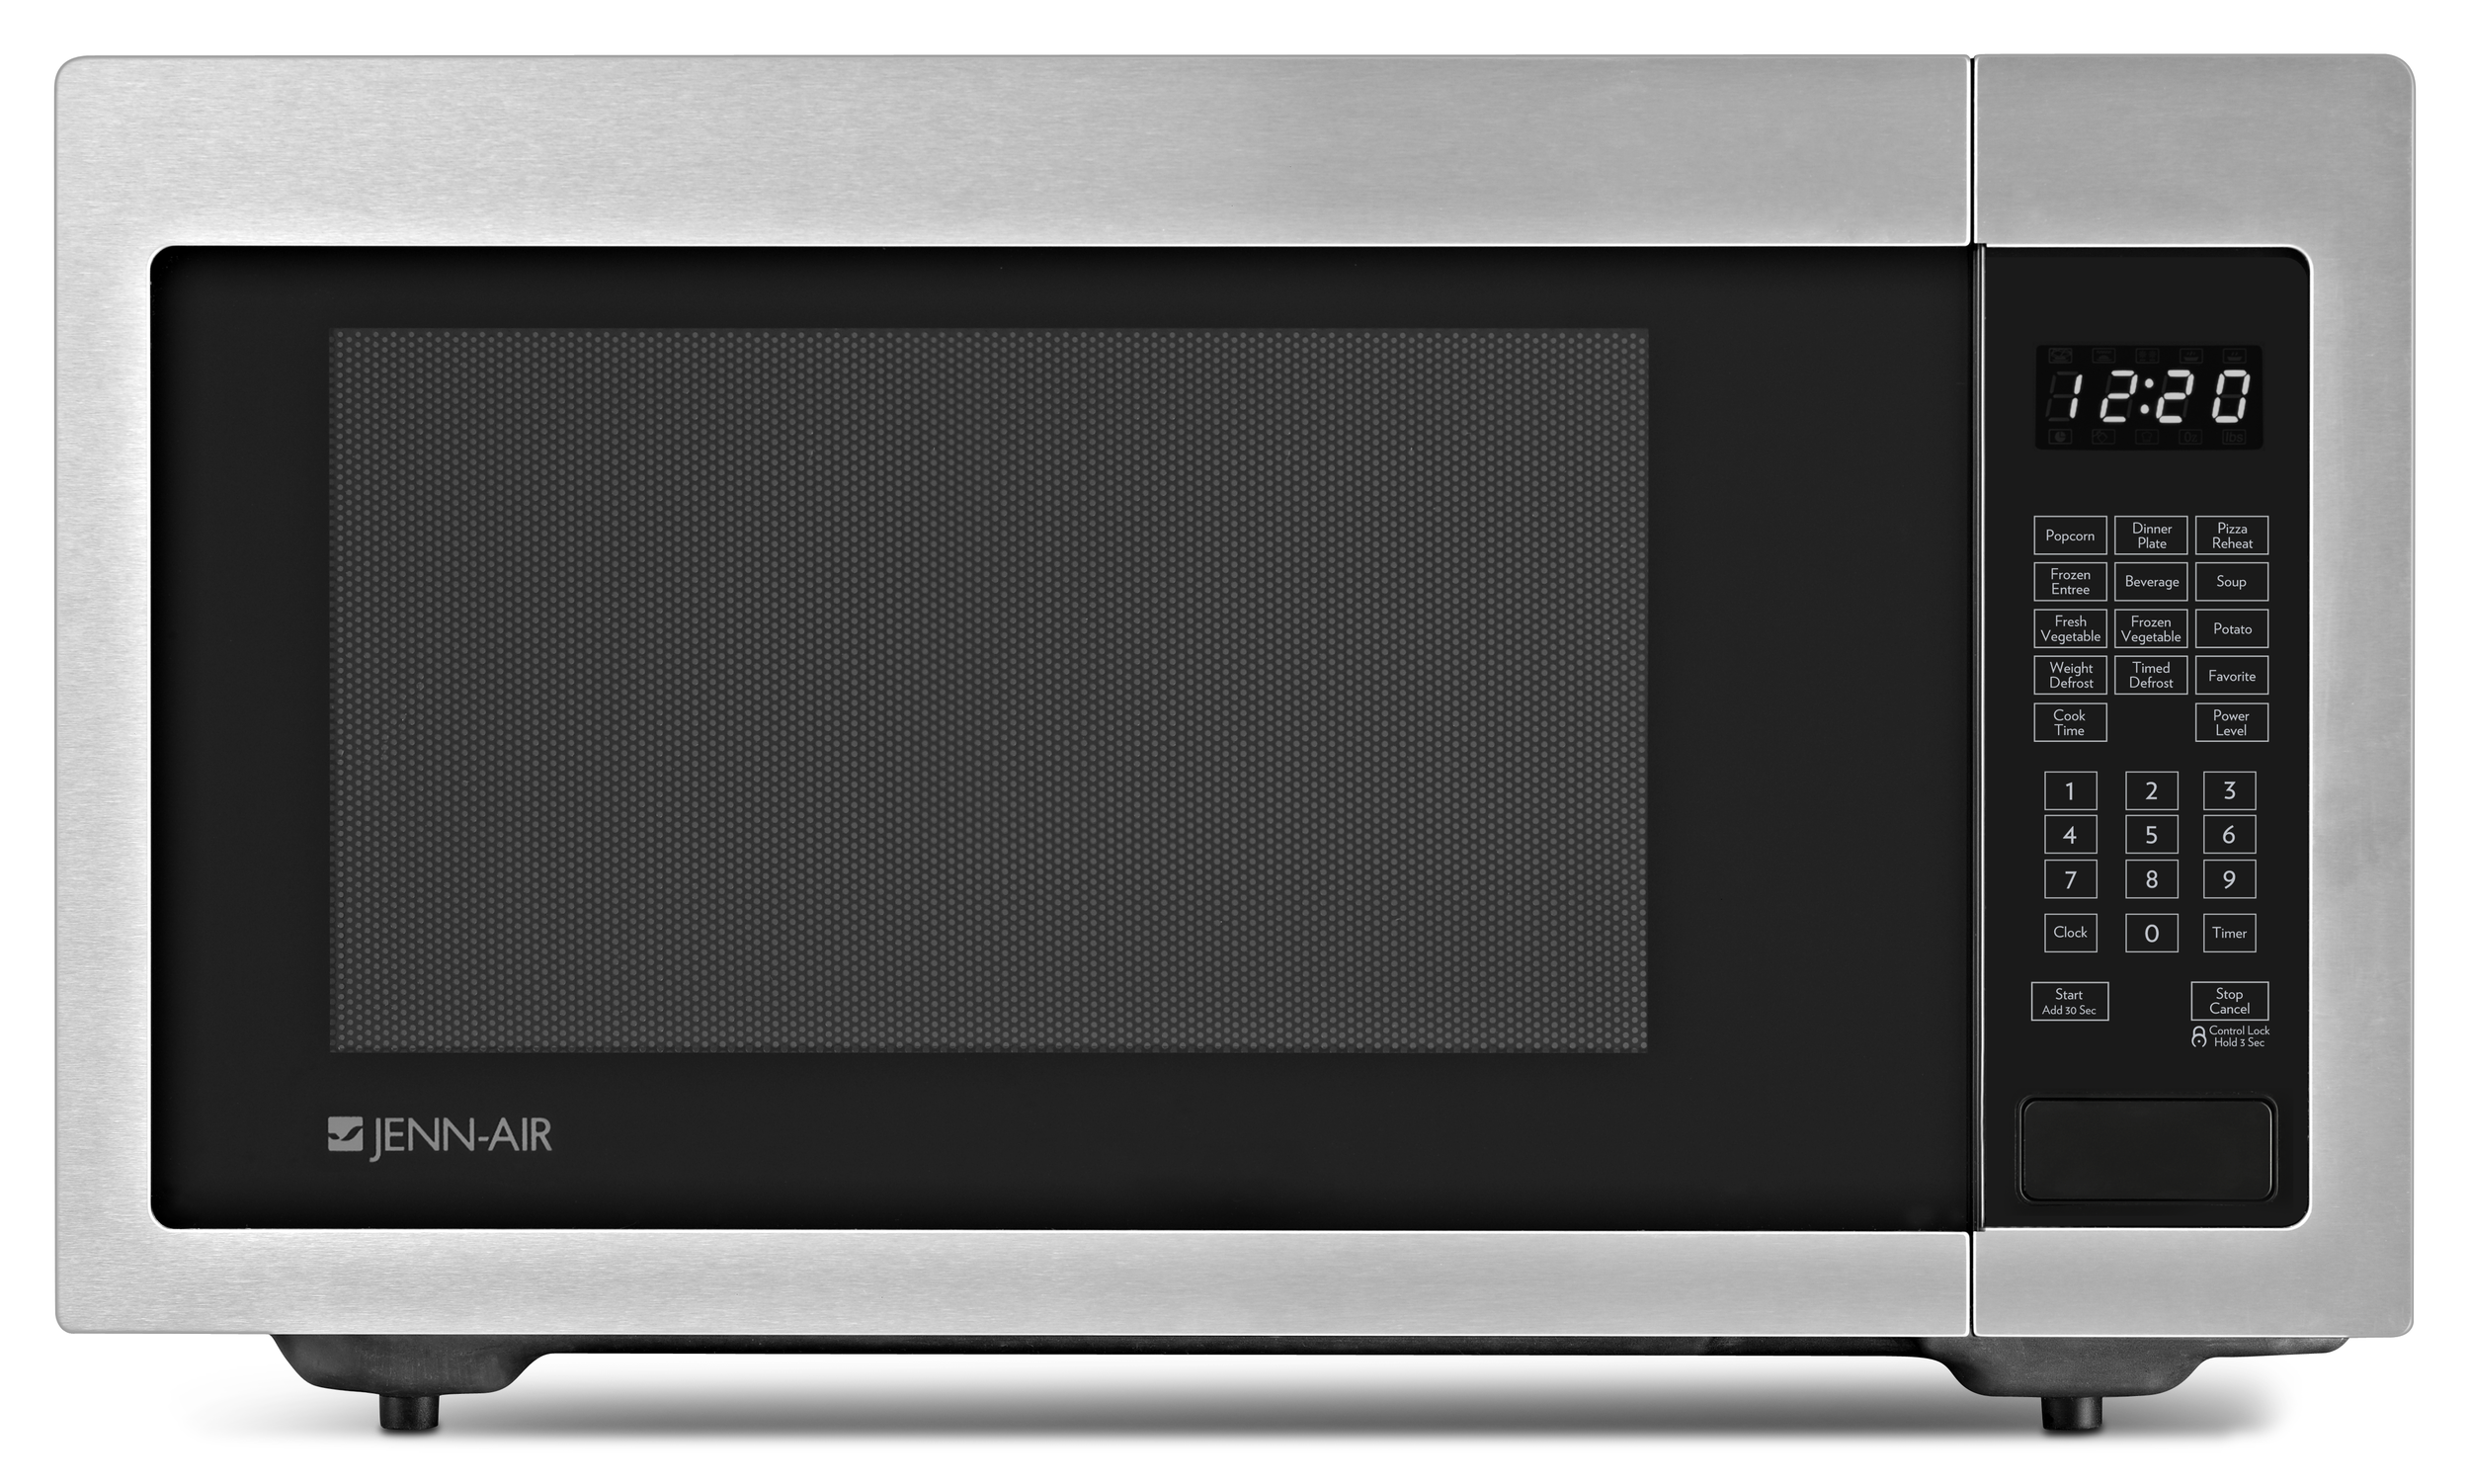 JENN-AIR Microwave JMC1116AS